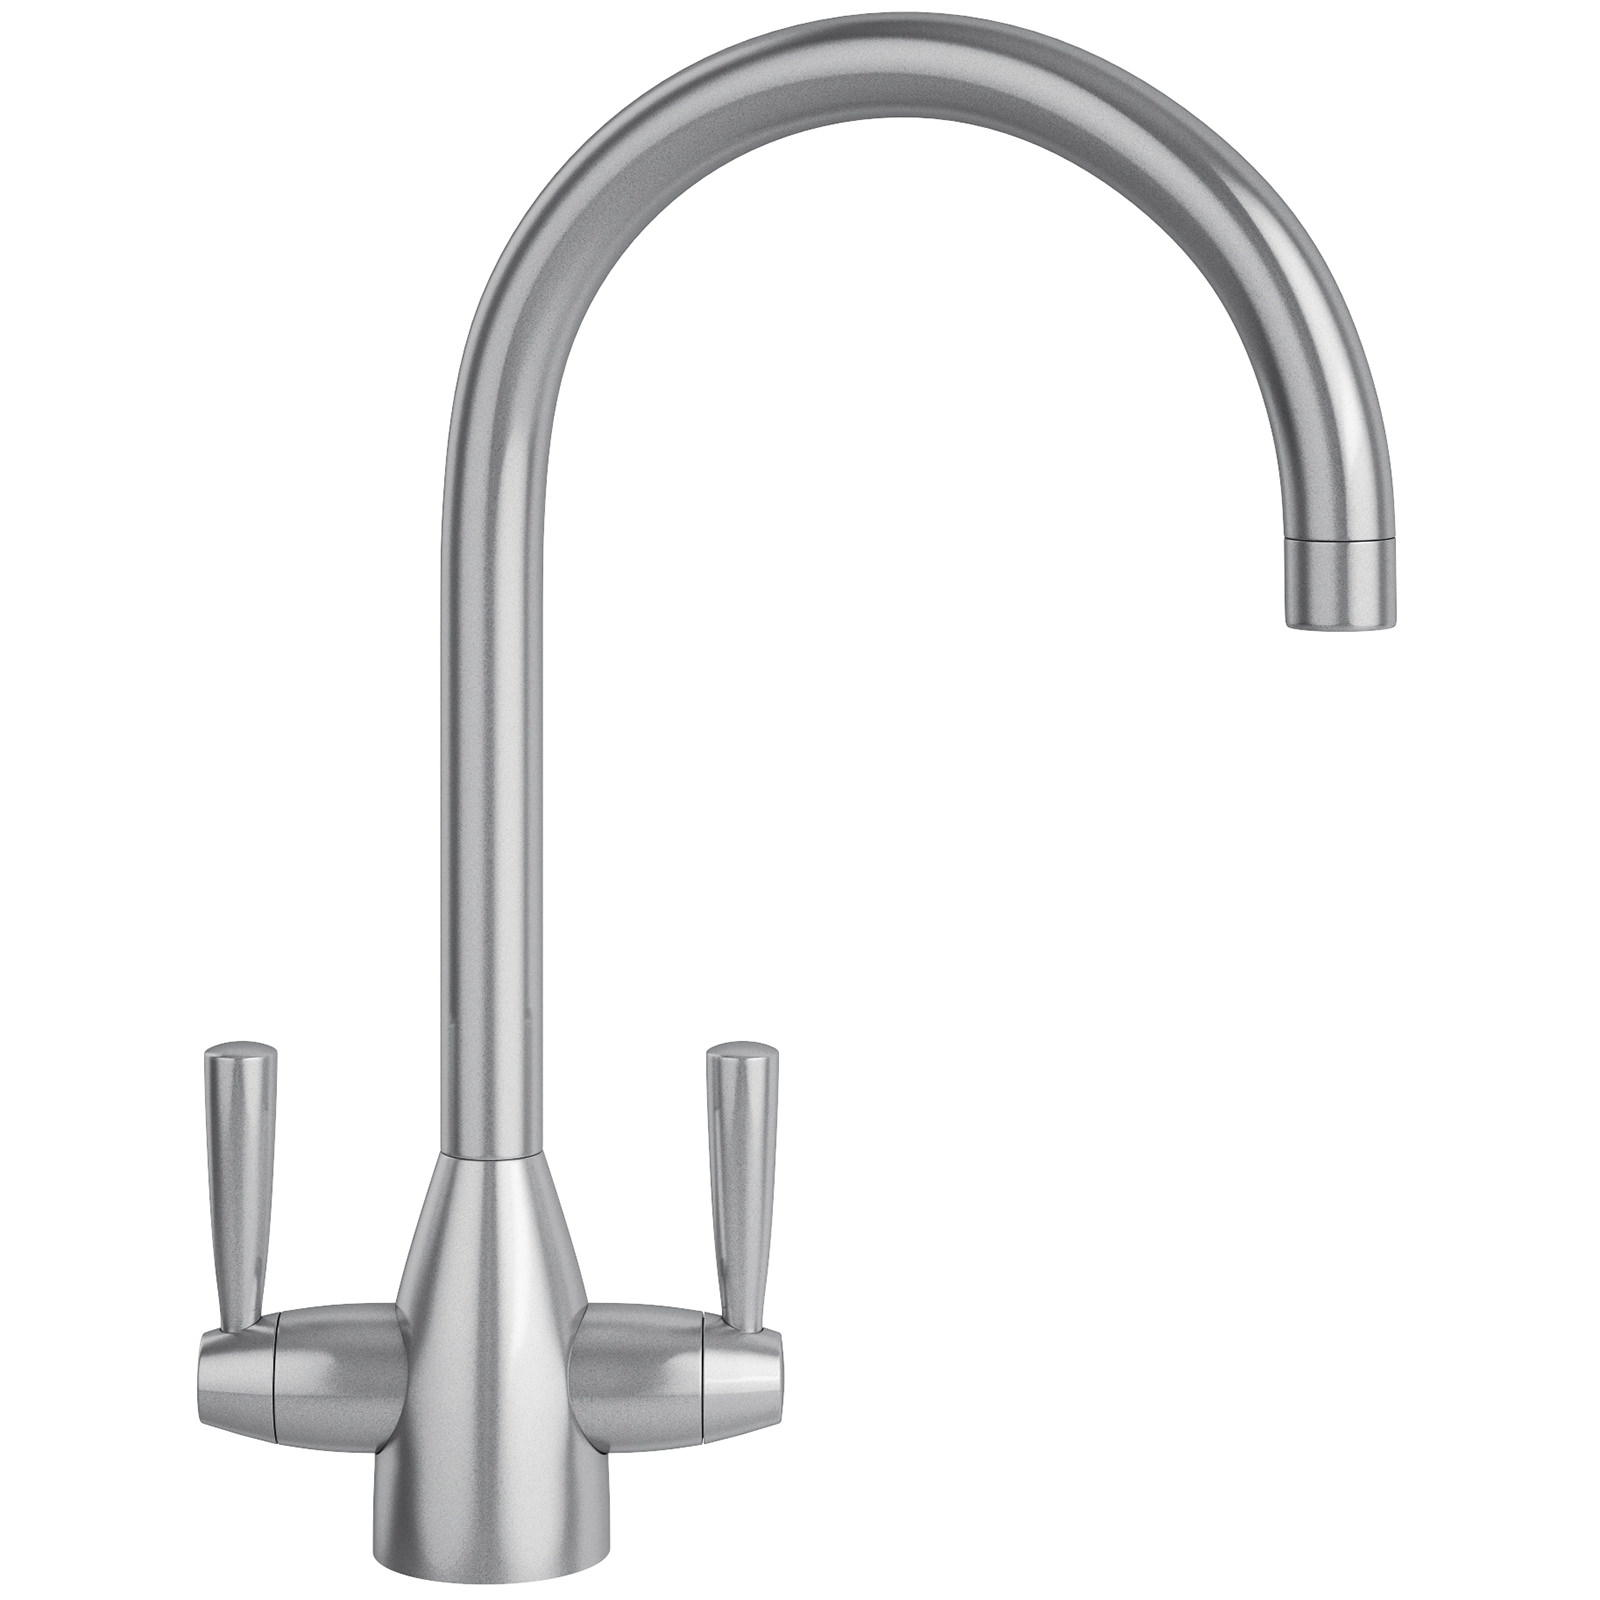 Franke Valais Kitchen Sink Mixer Tap Stainless Steel   115.0364.026